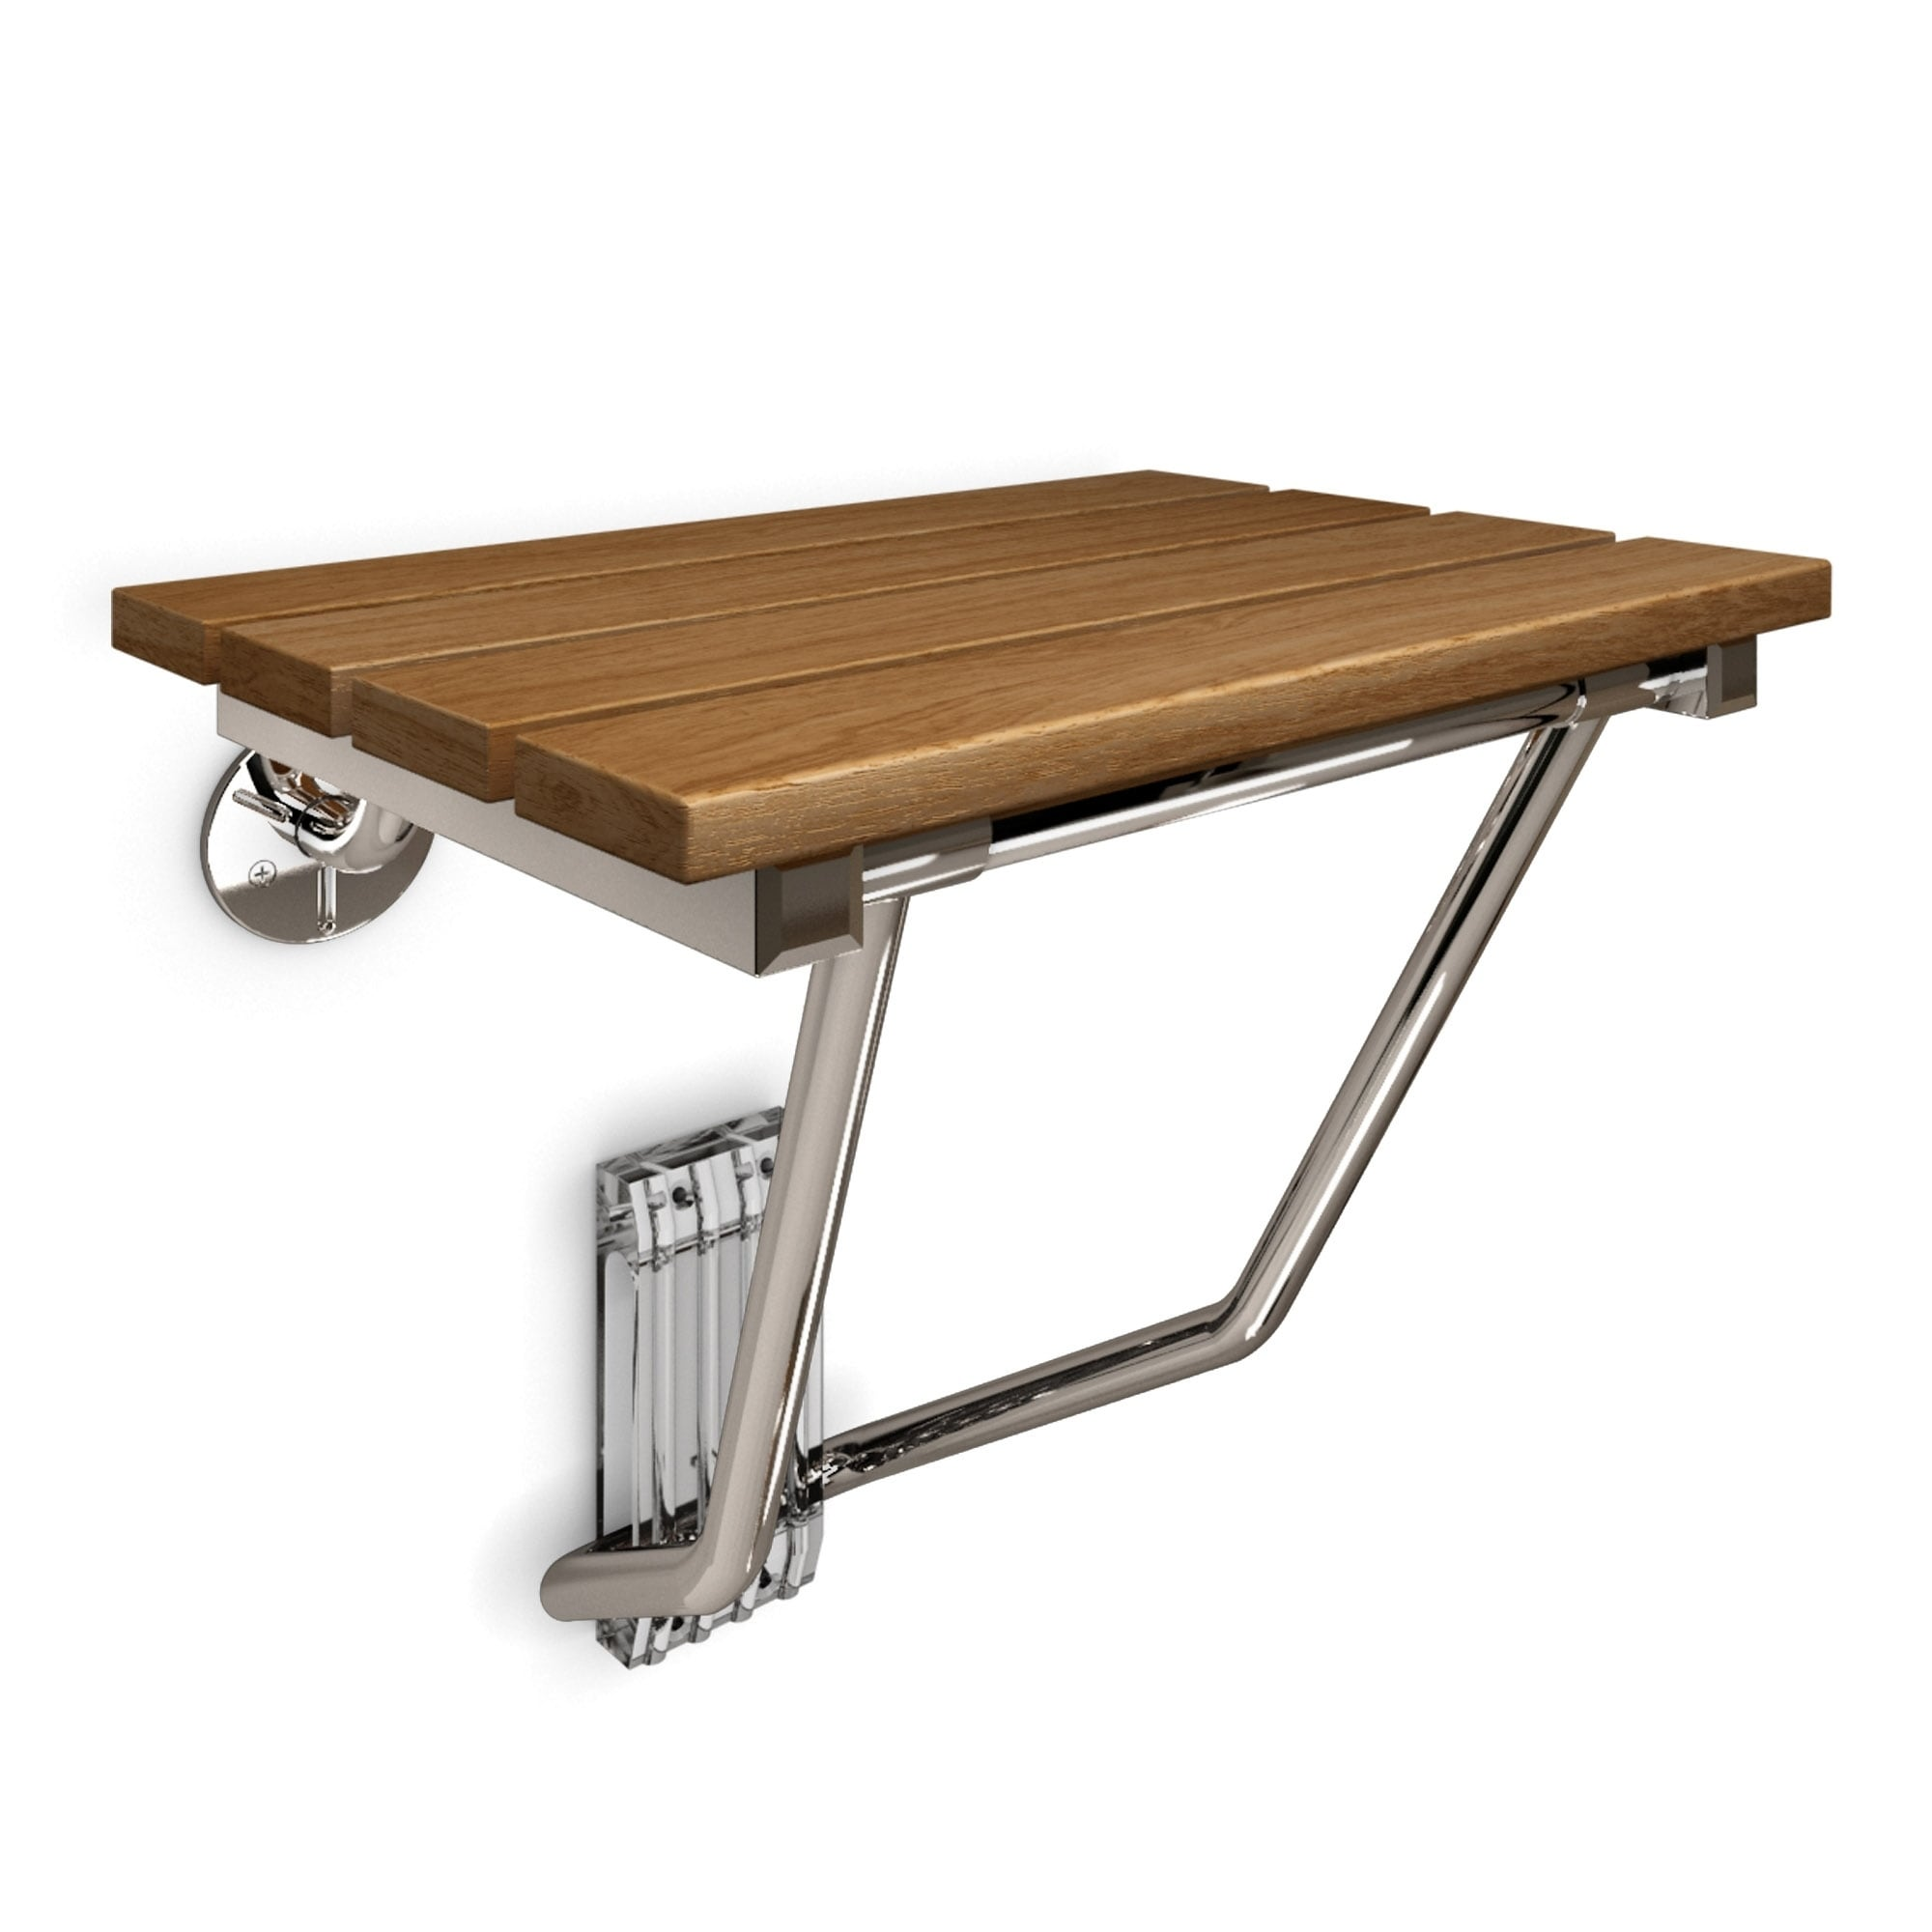 Shop Dreamline Folding Shower Seat Natural Teak Wood Free